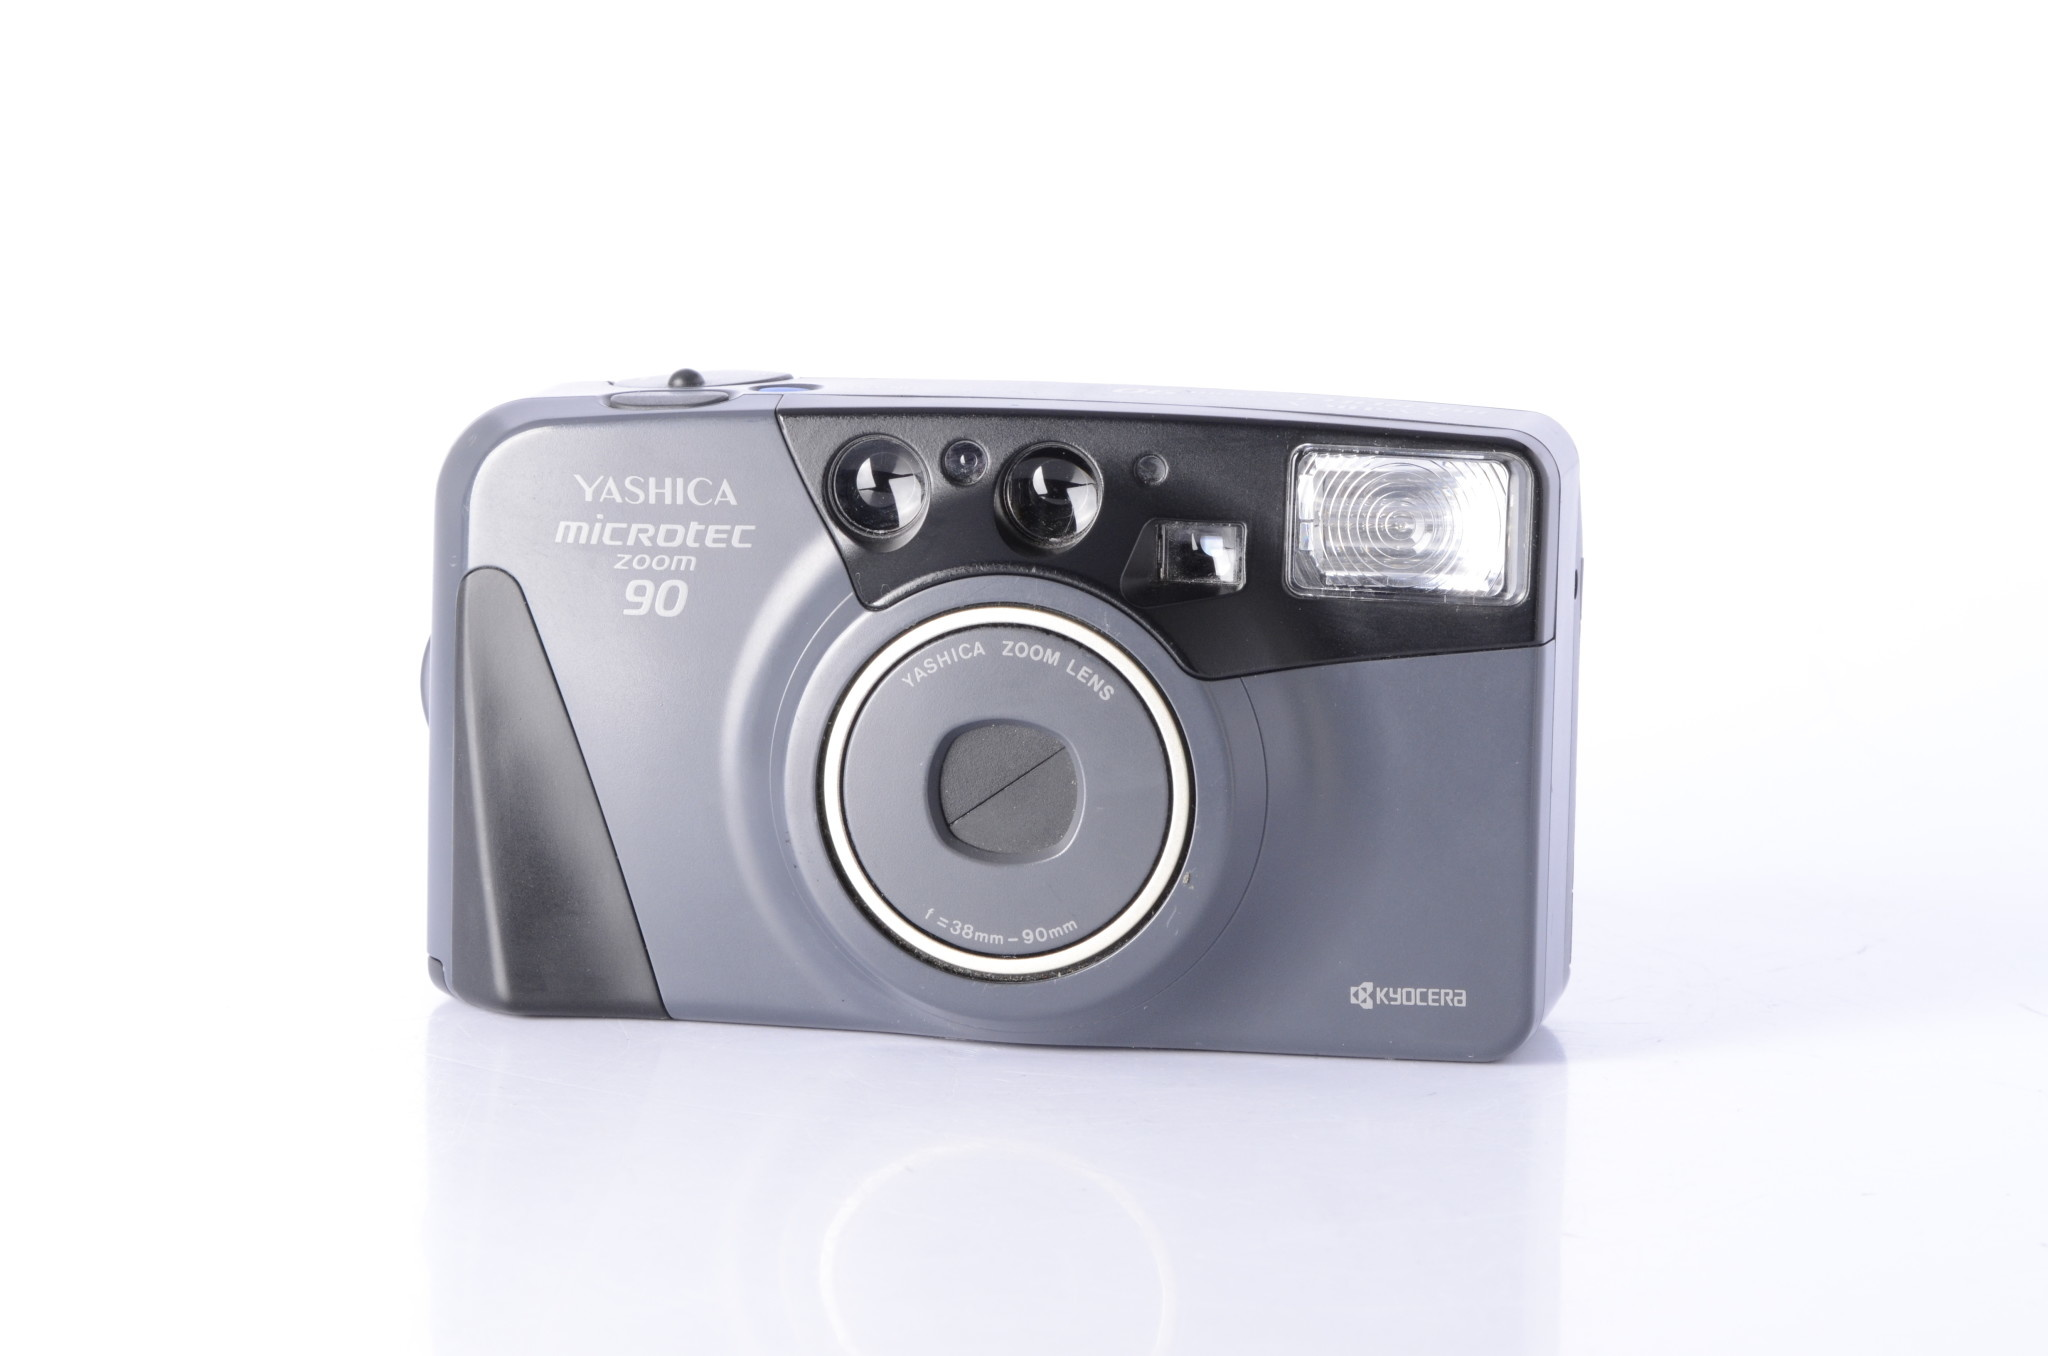 Yashica Yashica Microtec Zoom 90 | 35mm Point and Shoot